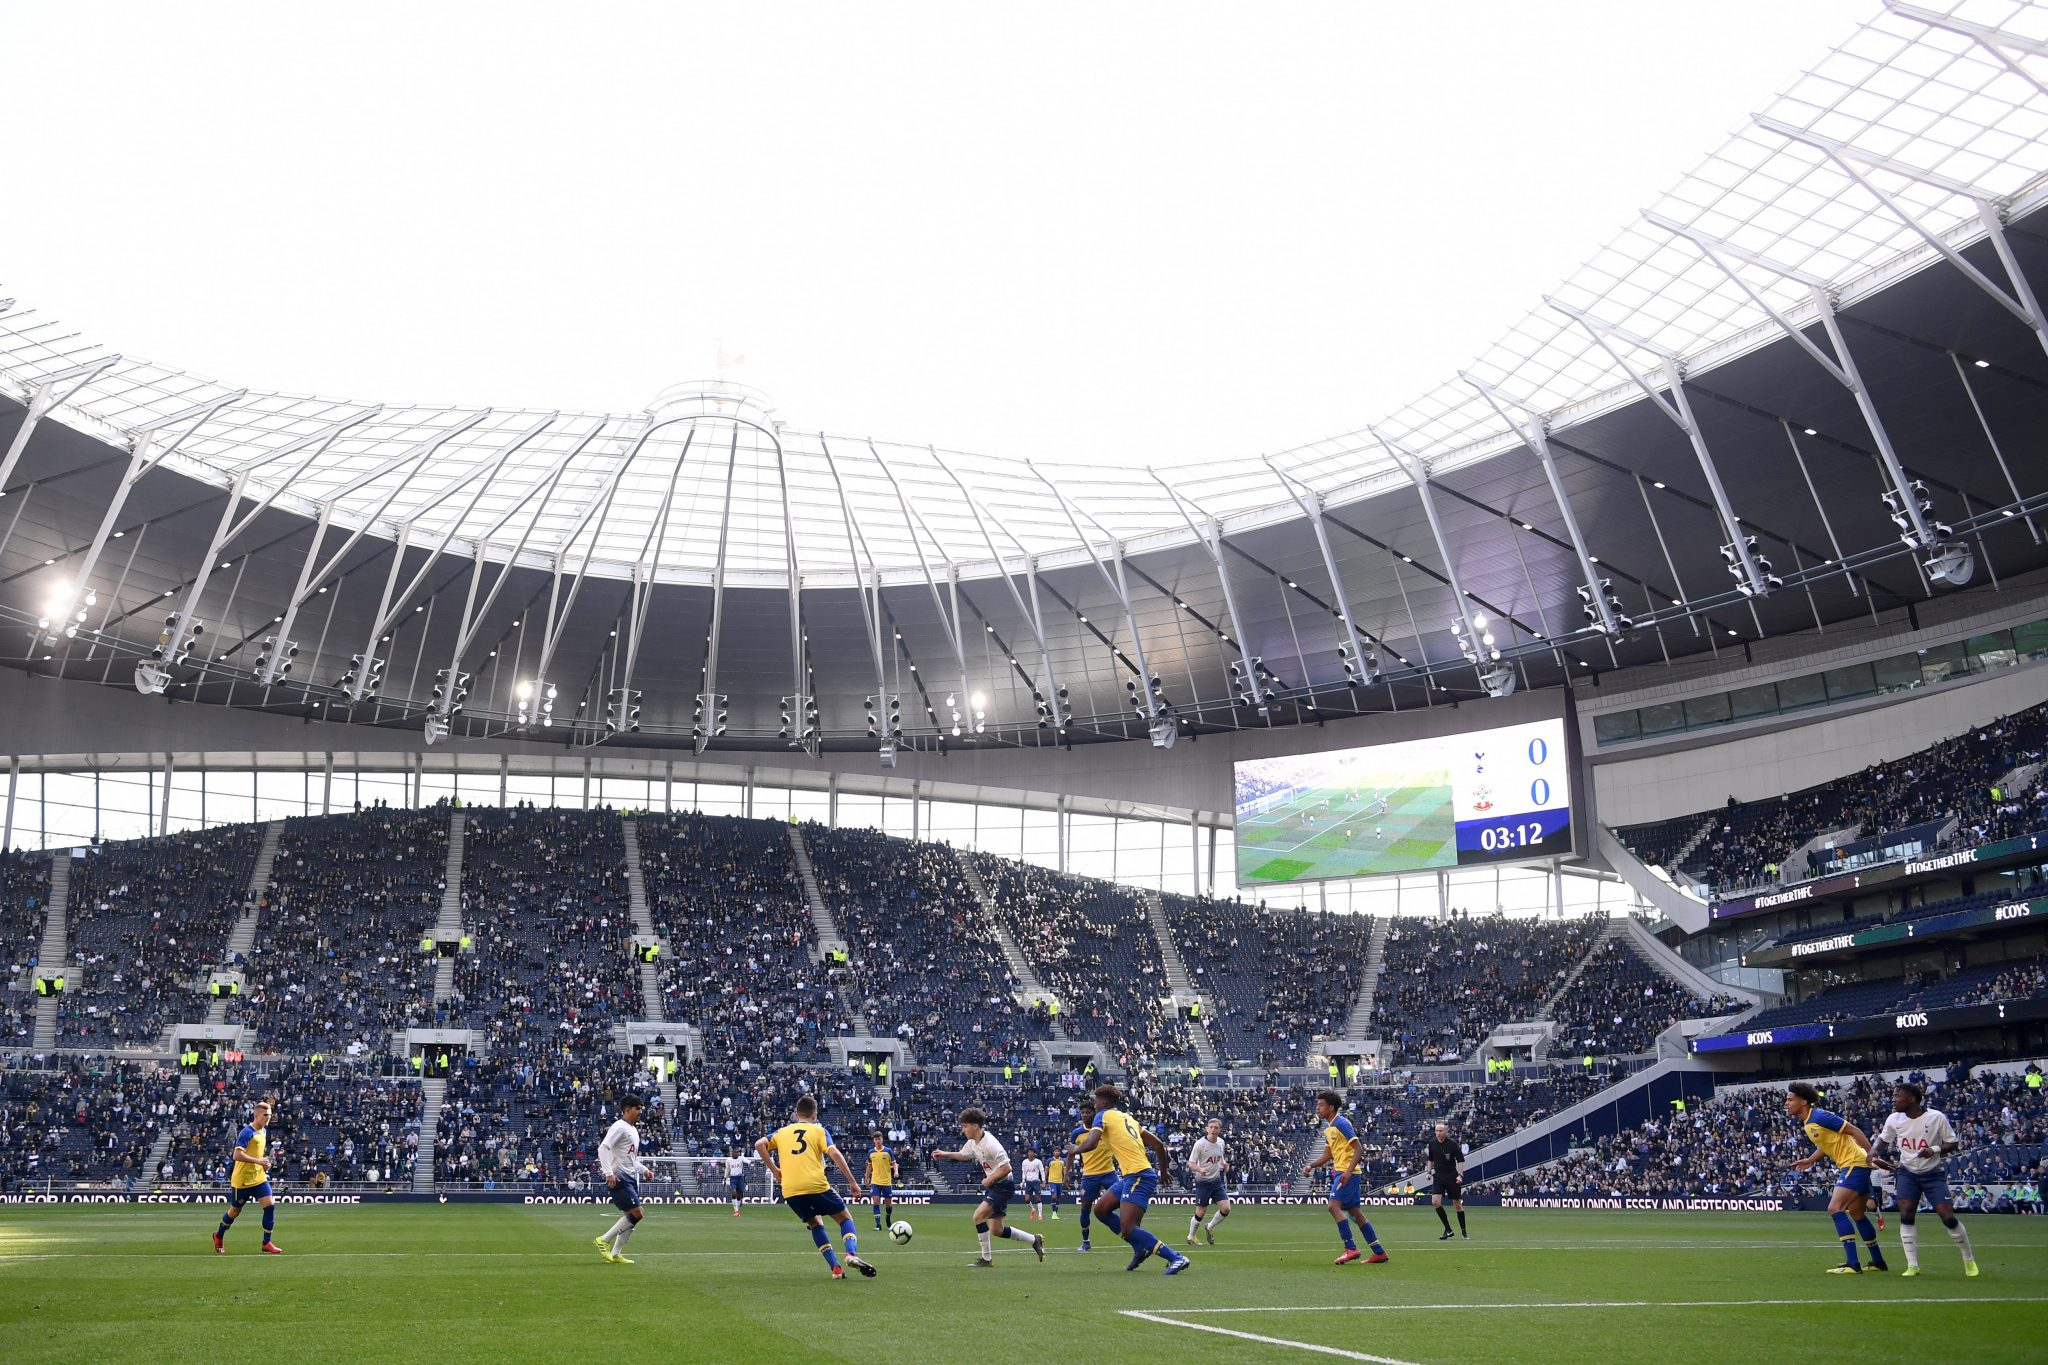 WATCH: The first ever goal scored at Tottenham Hotspur's new stadium